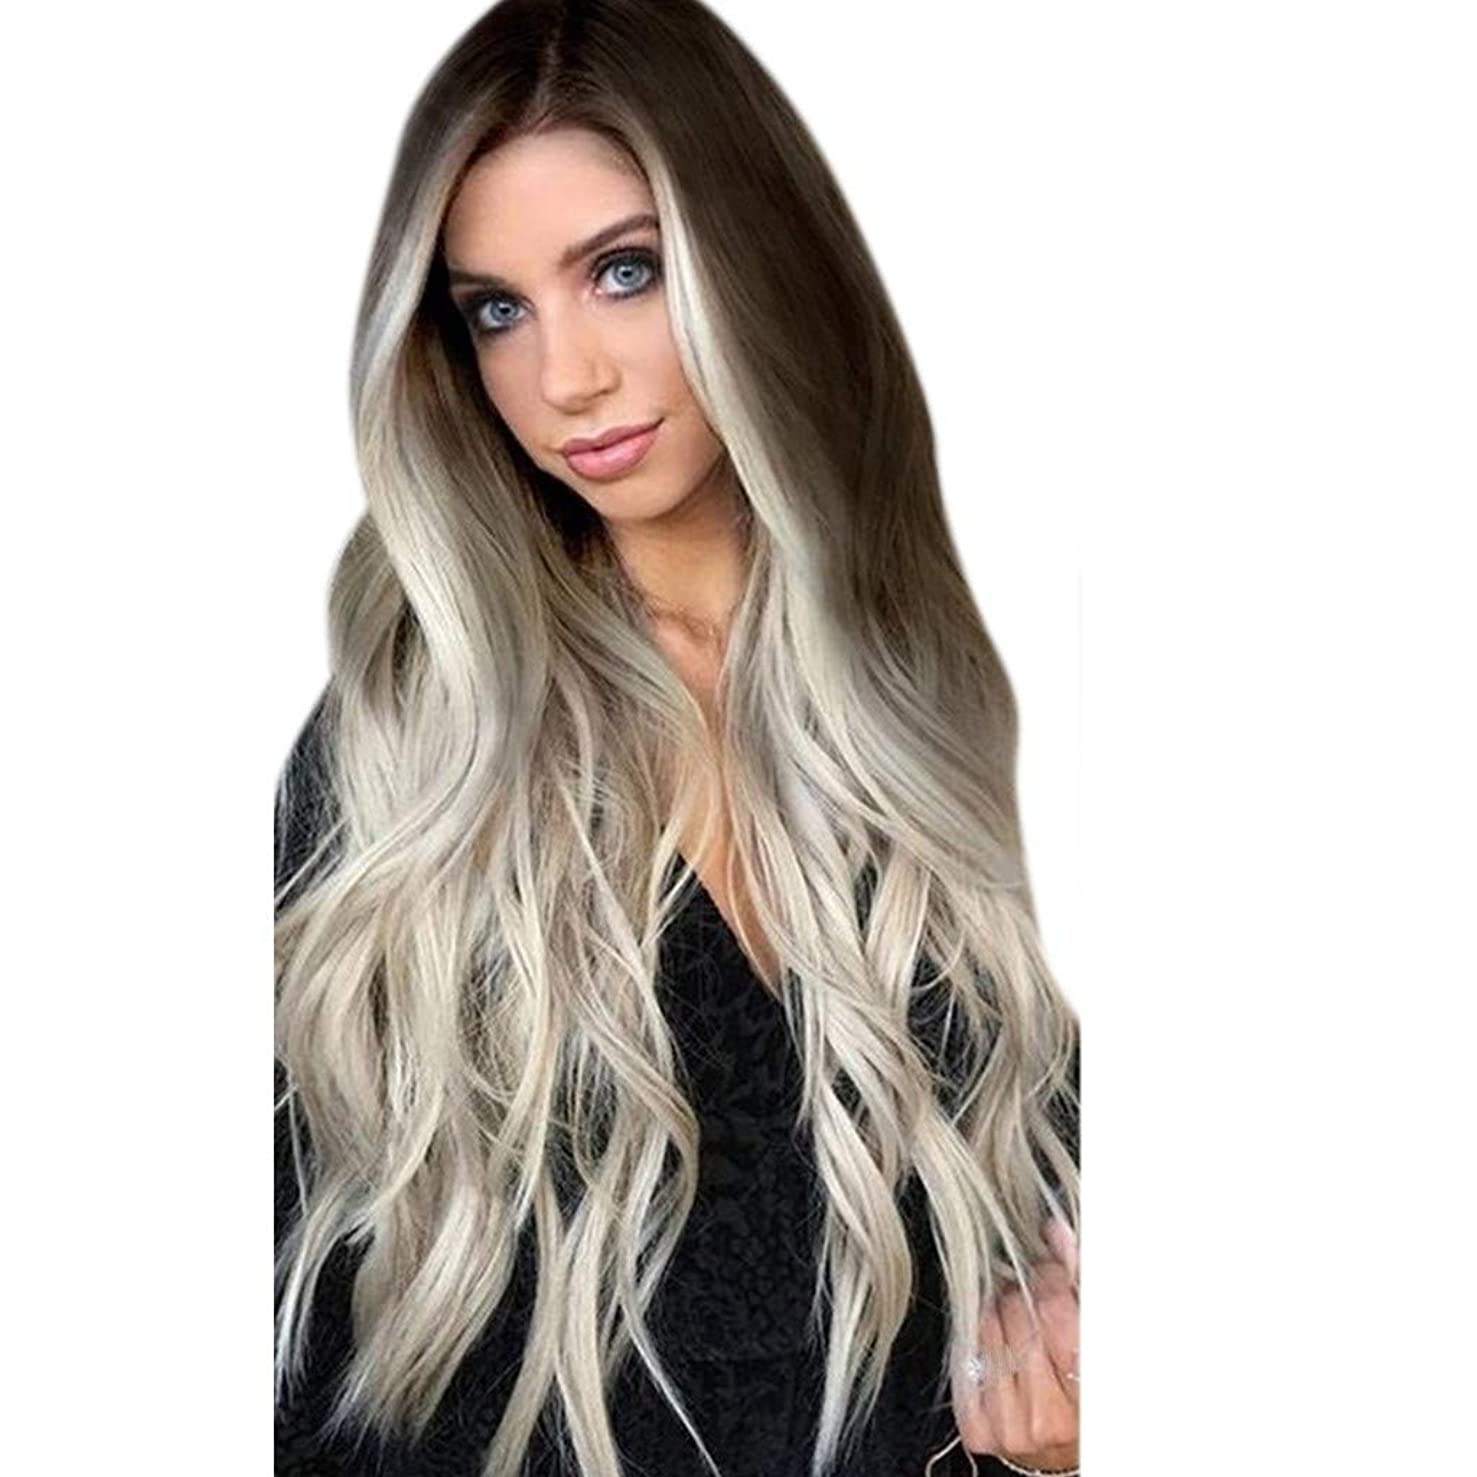 Ydida Grey Long Wavy Full Wigs Party Hair Wigs Rooted Light Blonde Lace Front Wigs for Women Best Synthetic Hair Wavy Wig with Flawless Hairline Heat Safe